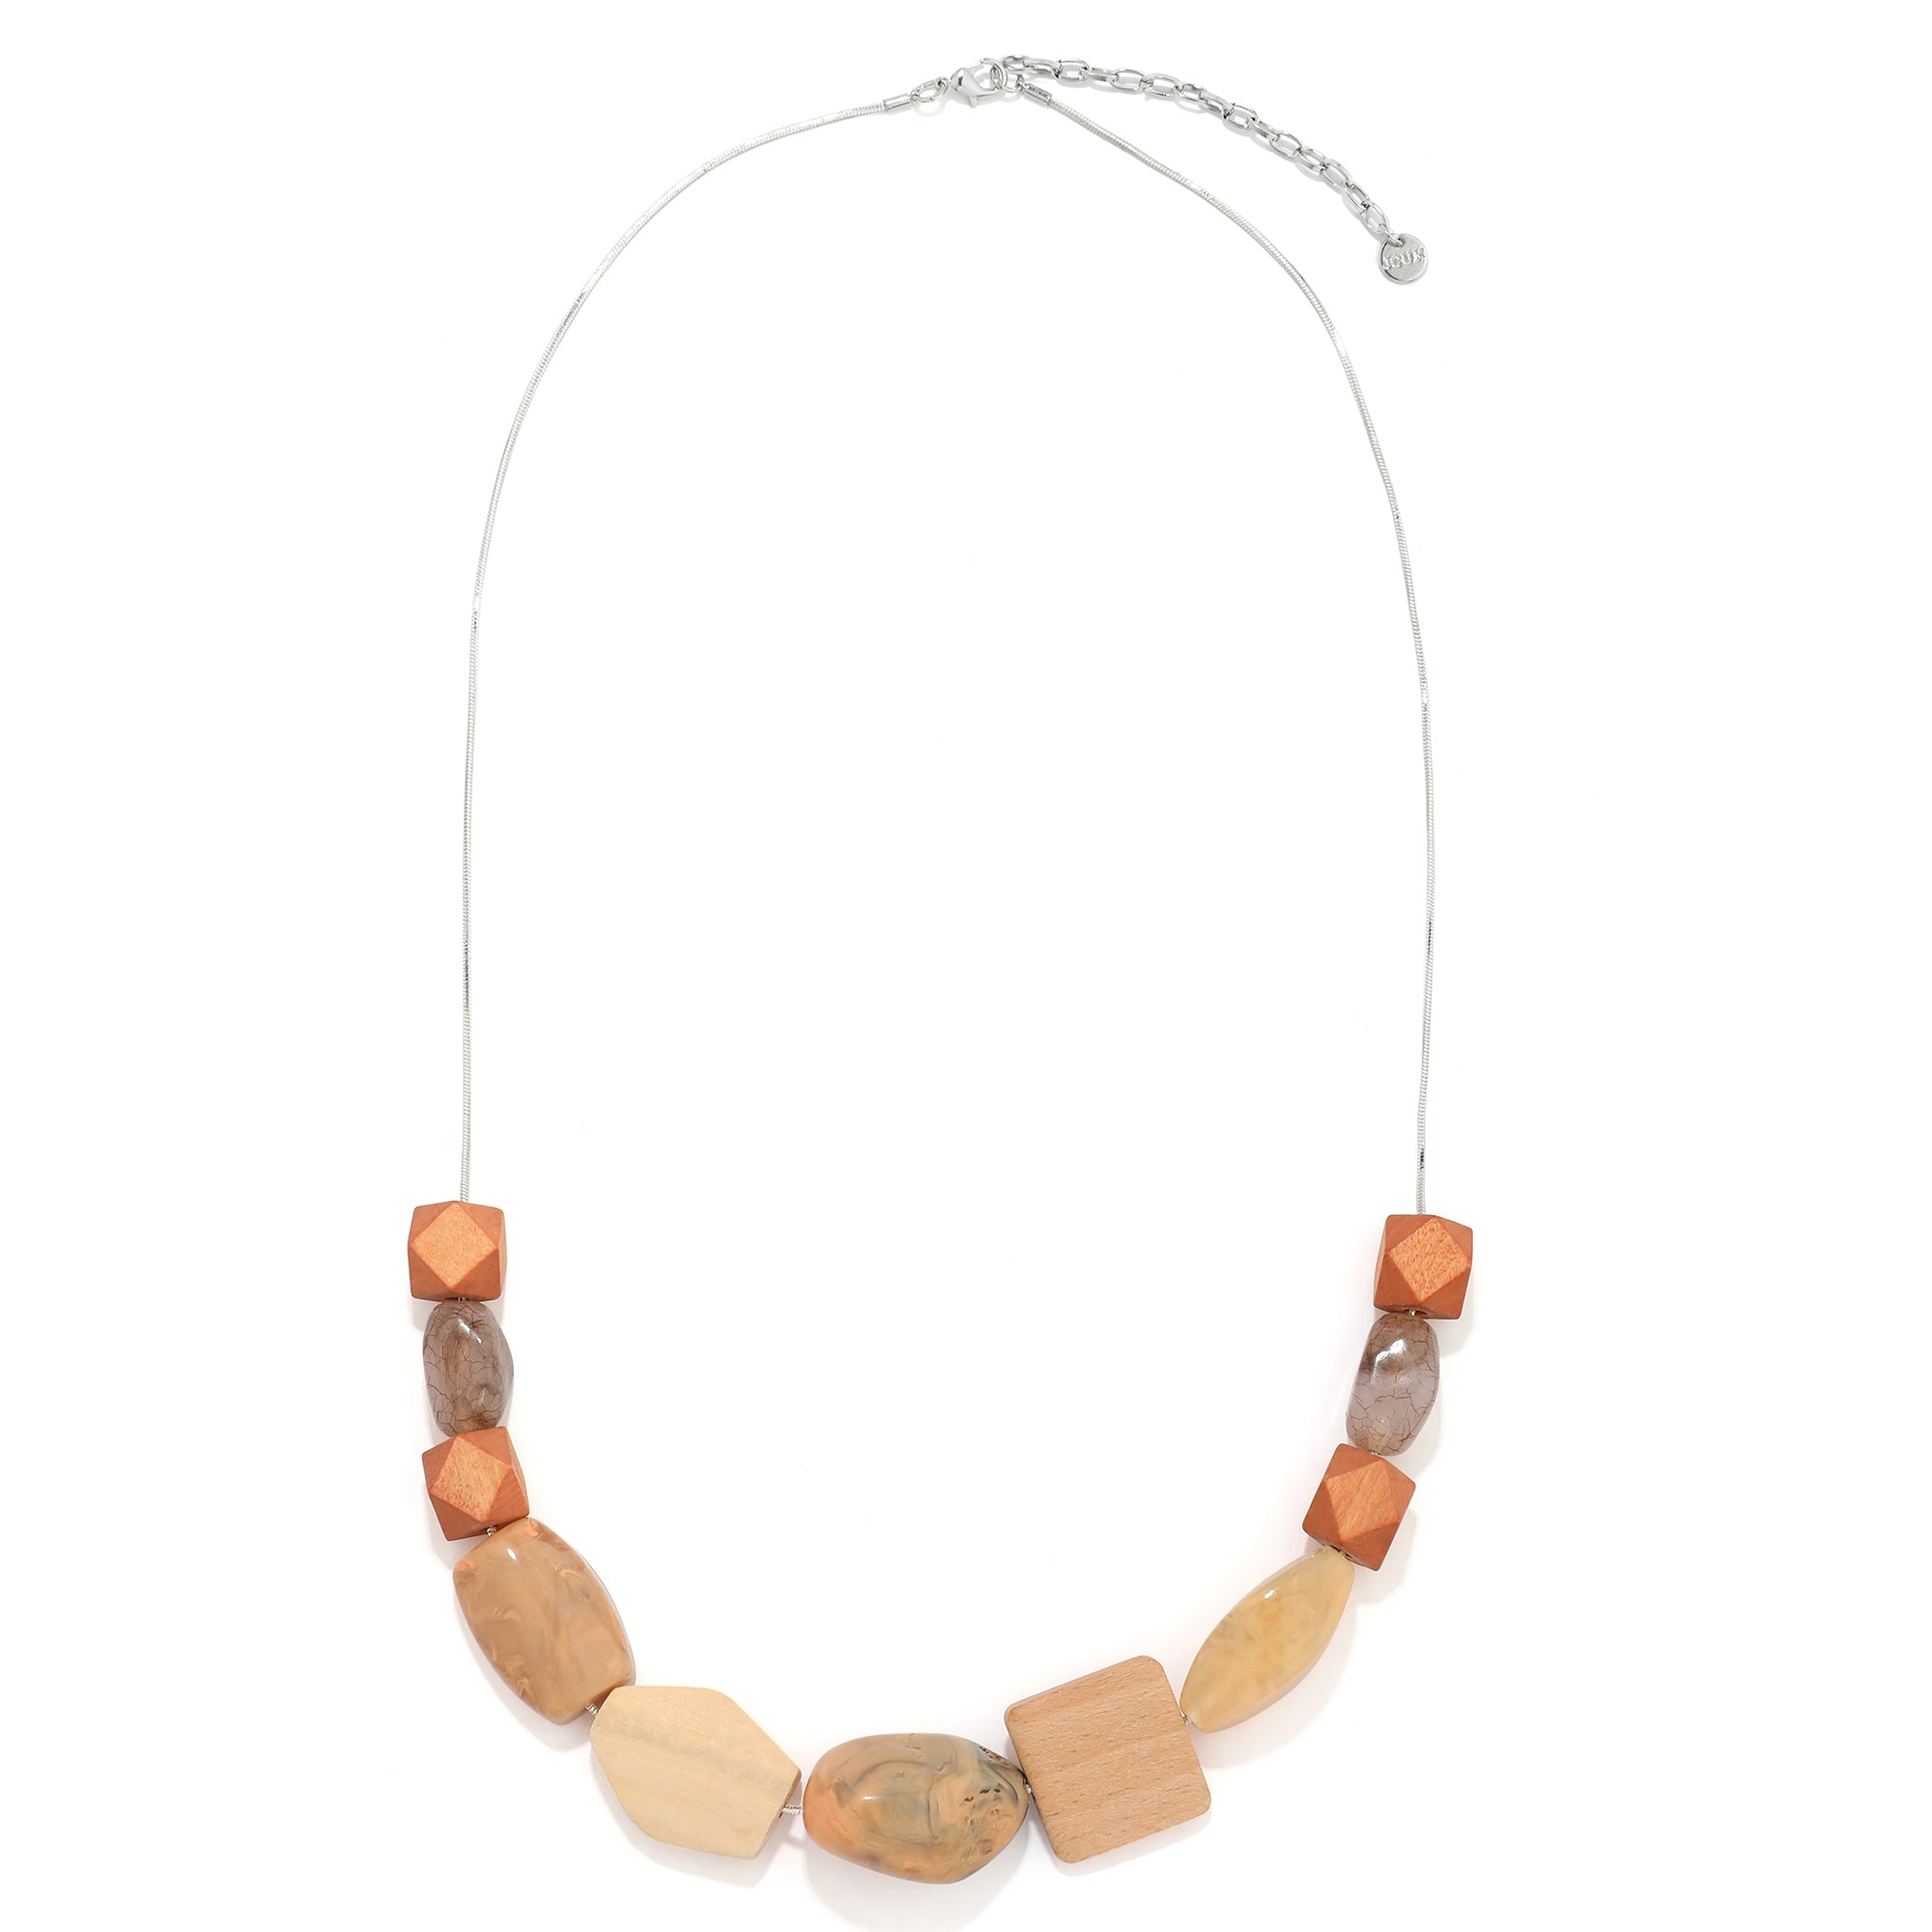 Silver Chain Geo Resin/Wood Necklace - JCUK